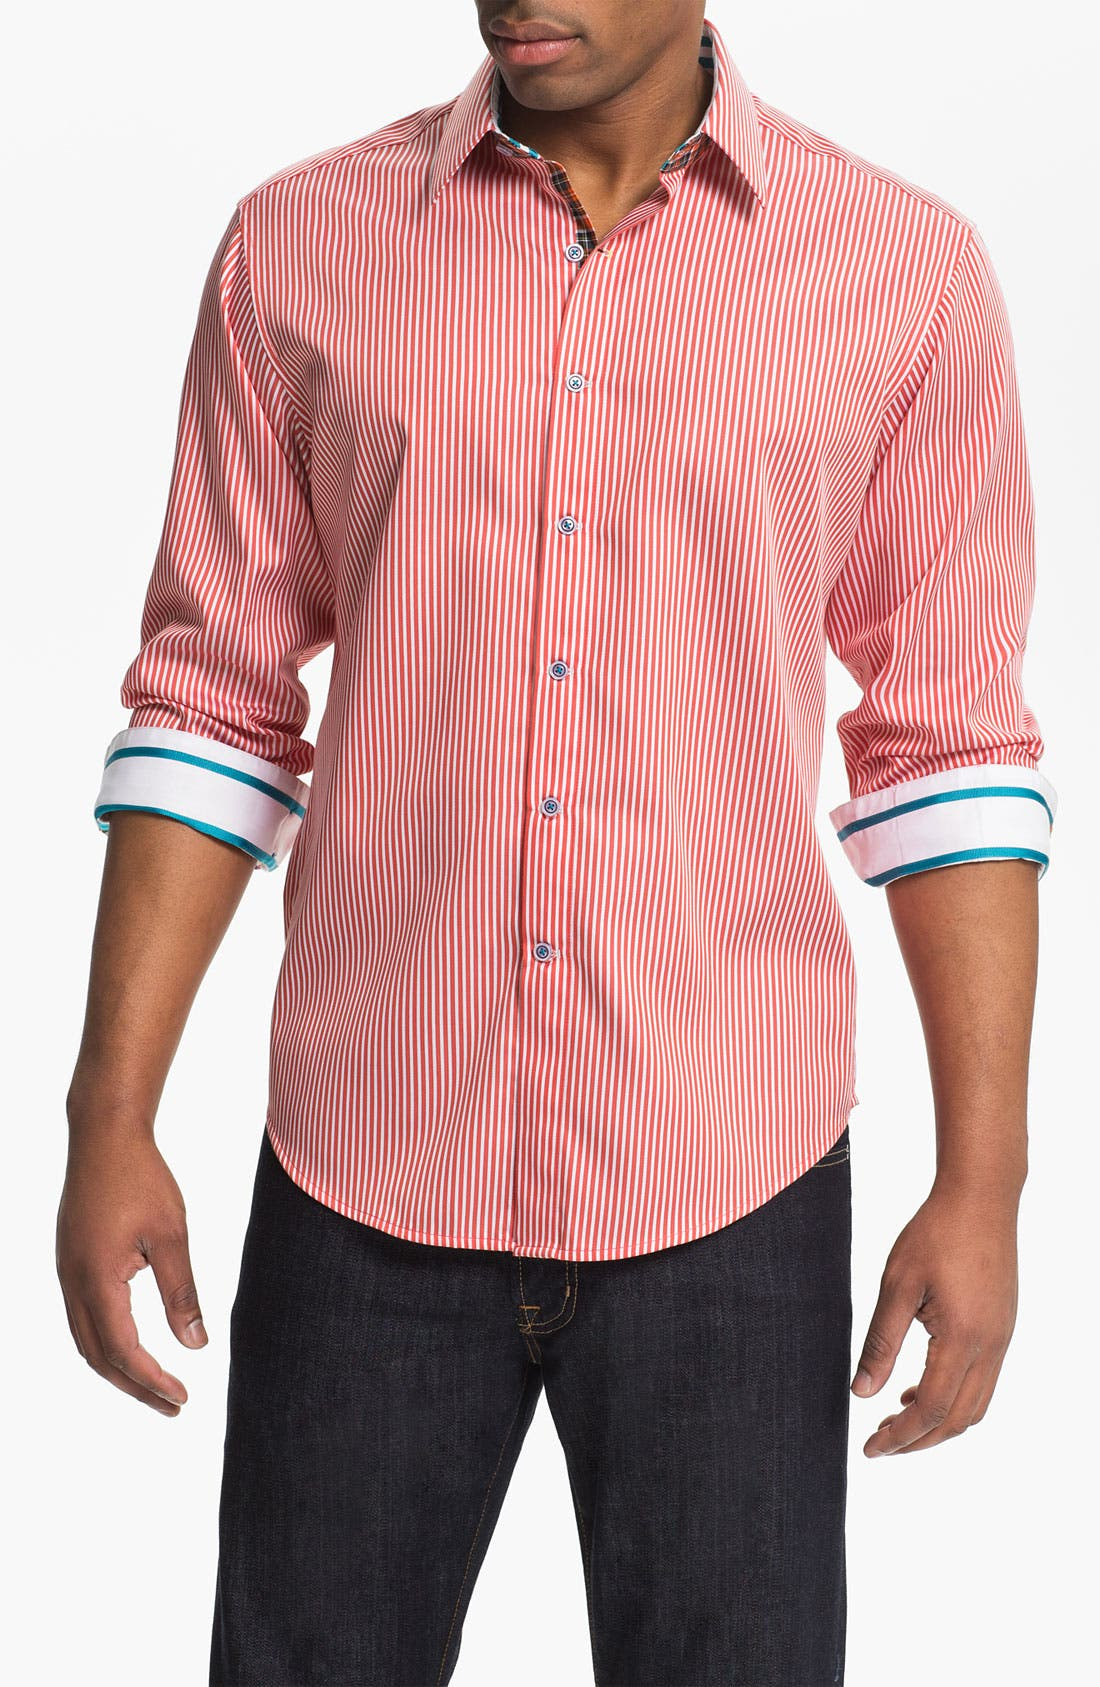 Alternate Image 1 Selected - Robert Graham 'Nemo' Sport Shirt